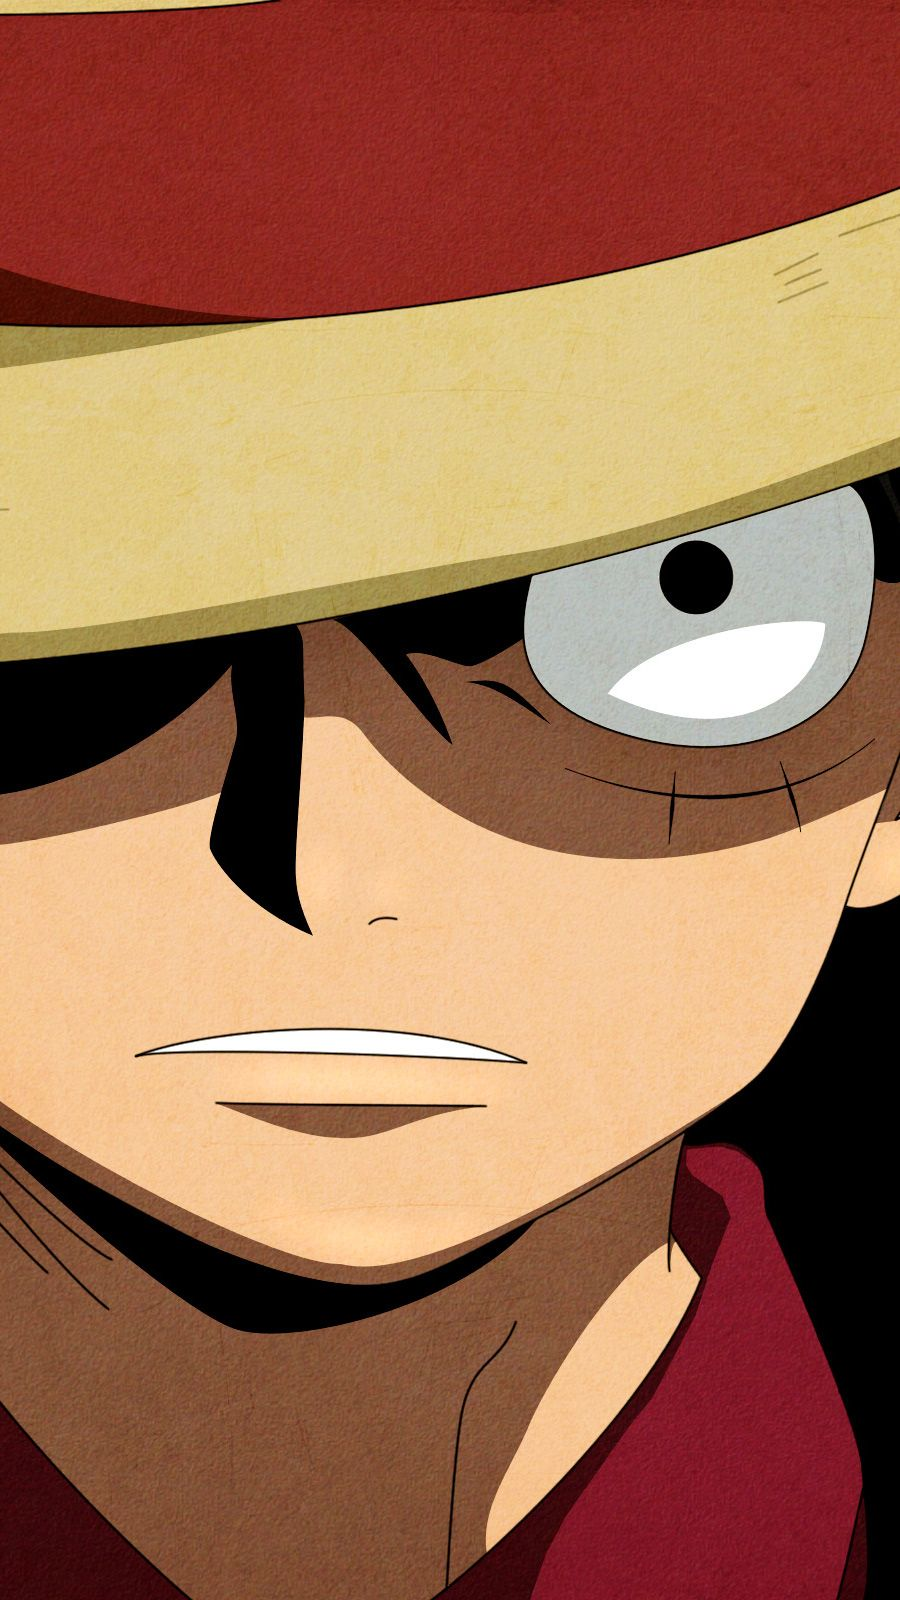 Pin By Wallpaper On Onepiecewallpaper1 One Piece Manga One Piece Wallpaper Iphone One Piece Luffy